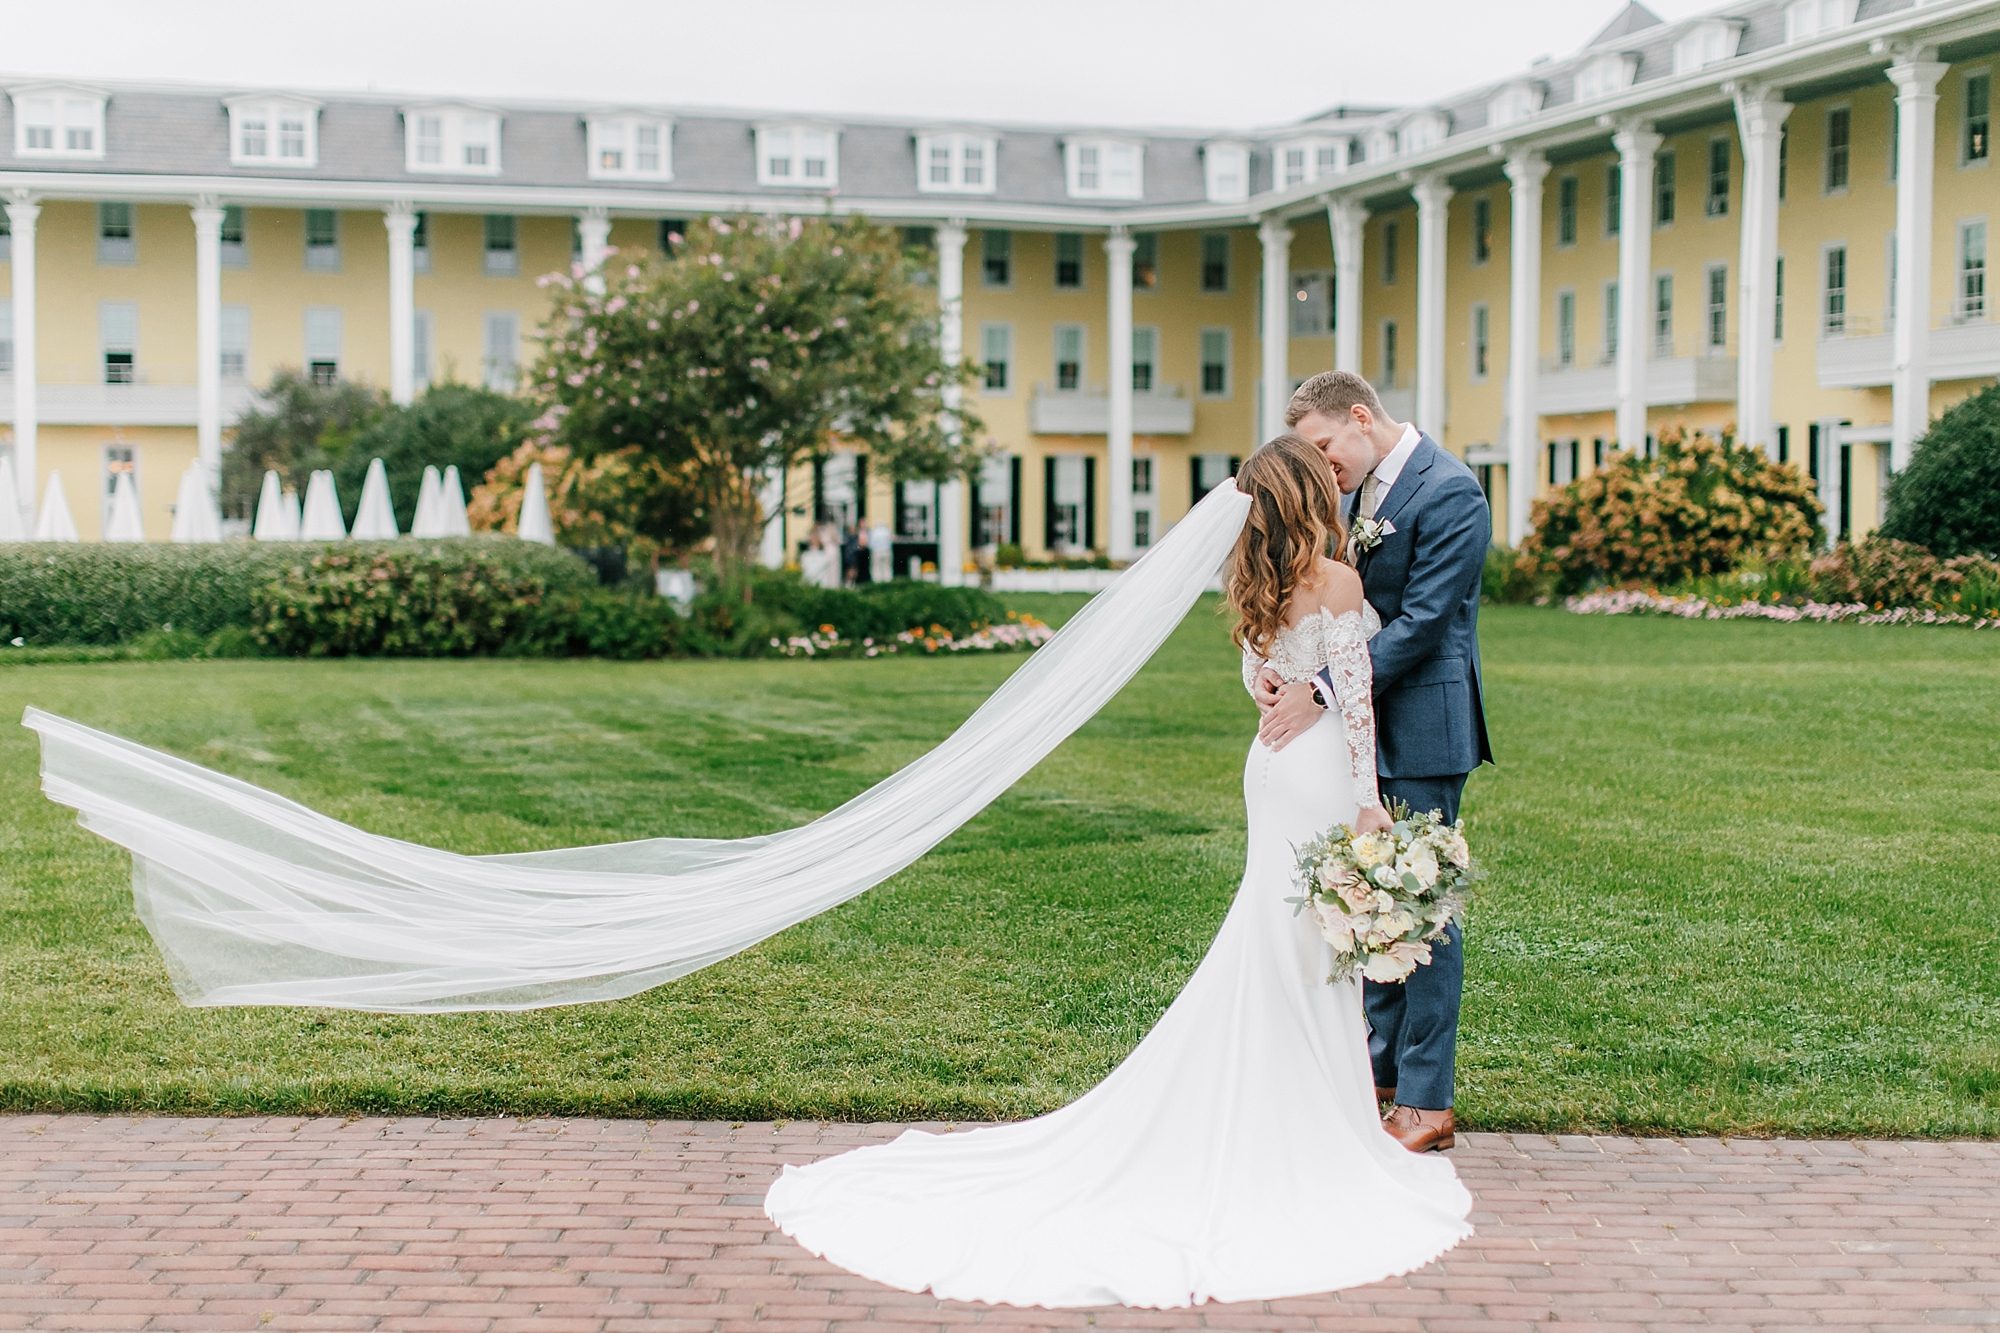 Intimate and Joyful Wedding Photography in Cape May NJ by Magdalena Studios 0019 4